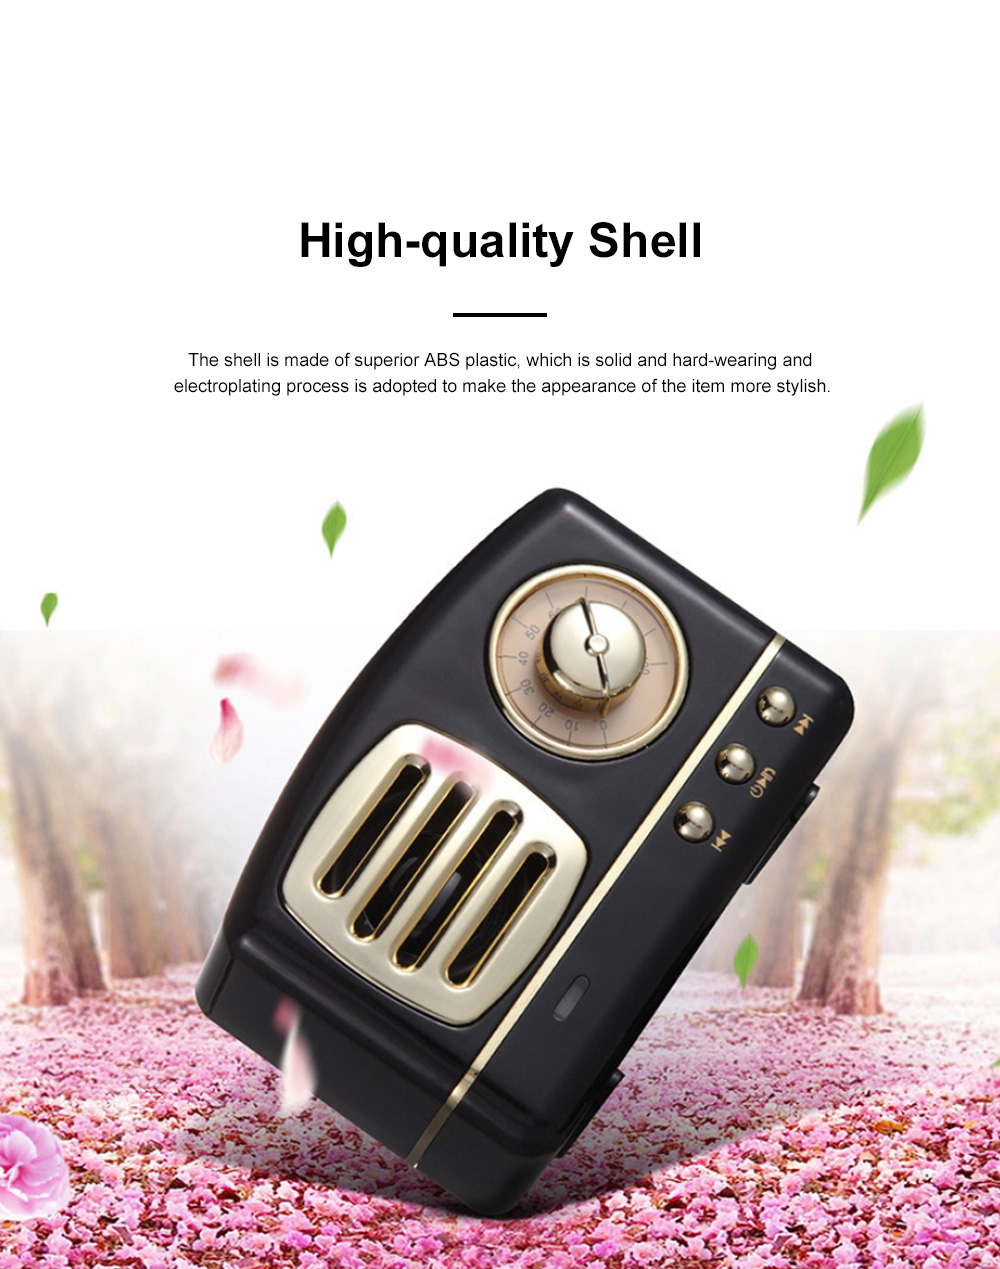 Creative Vintage Radio Model Portable Bluetooth Loudspeaker Box Base Large Battery Capacity Sound Box Stereo 5